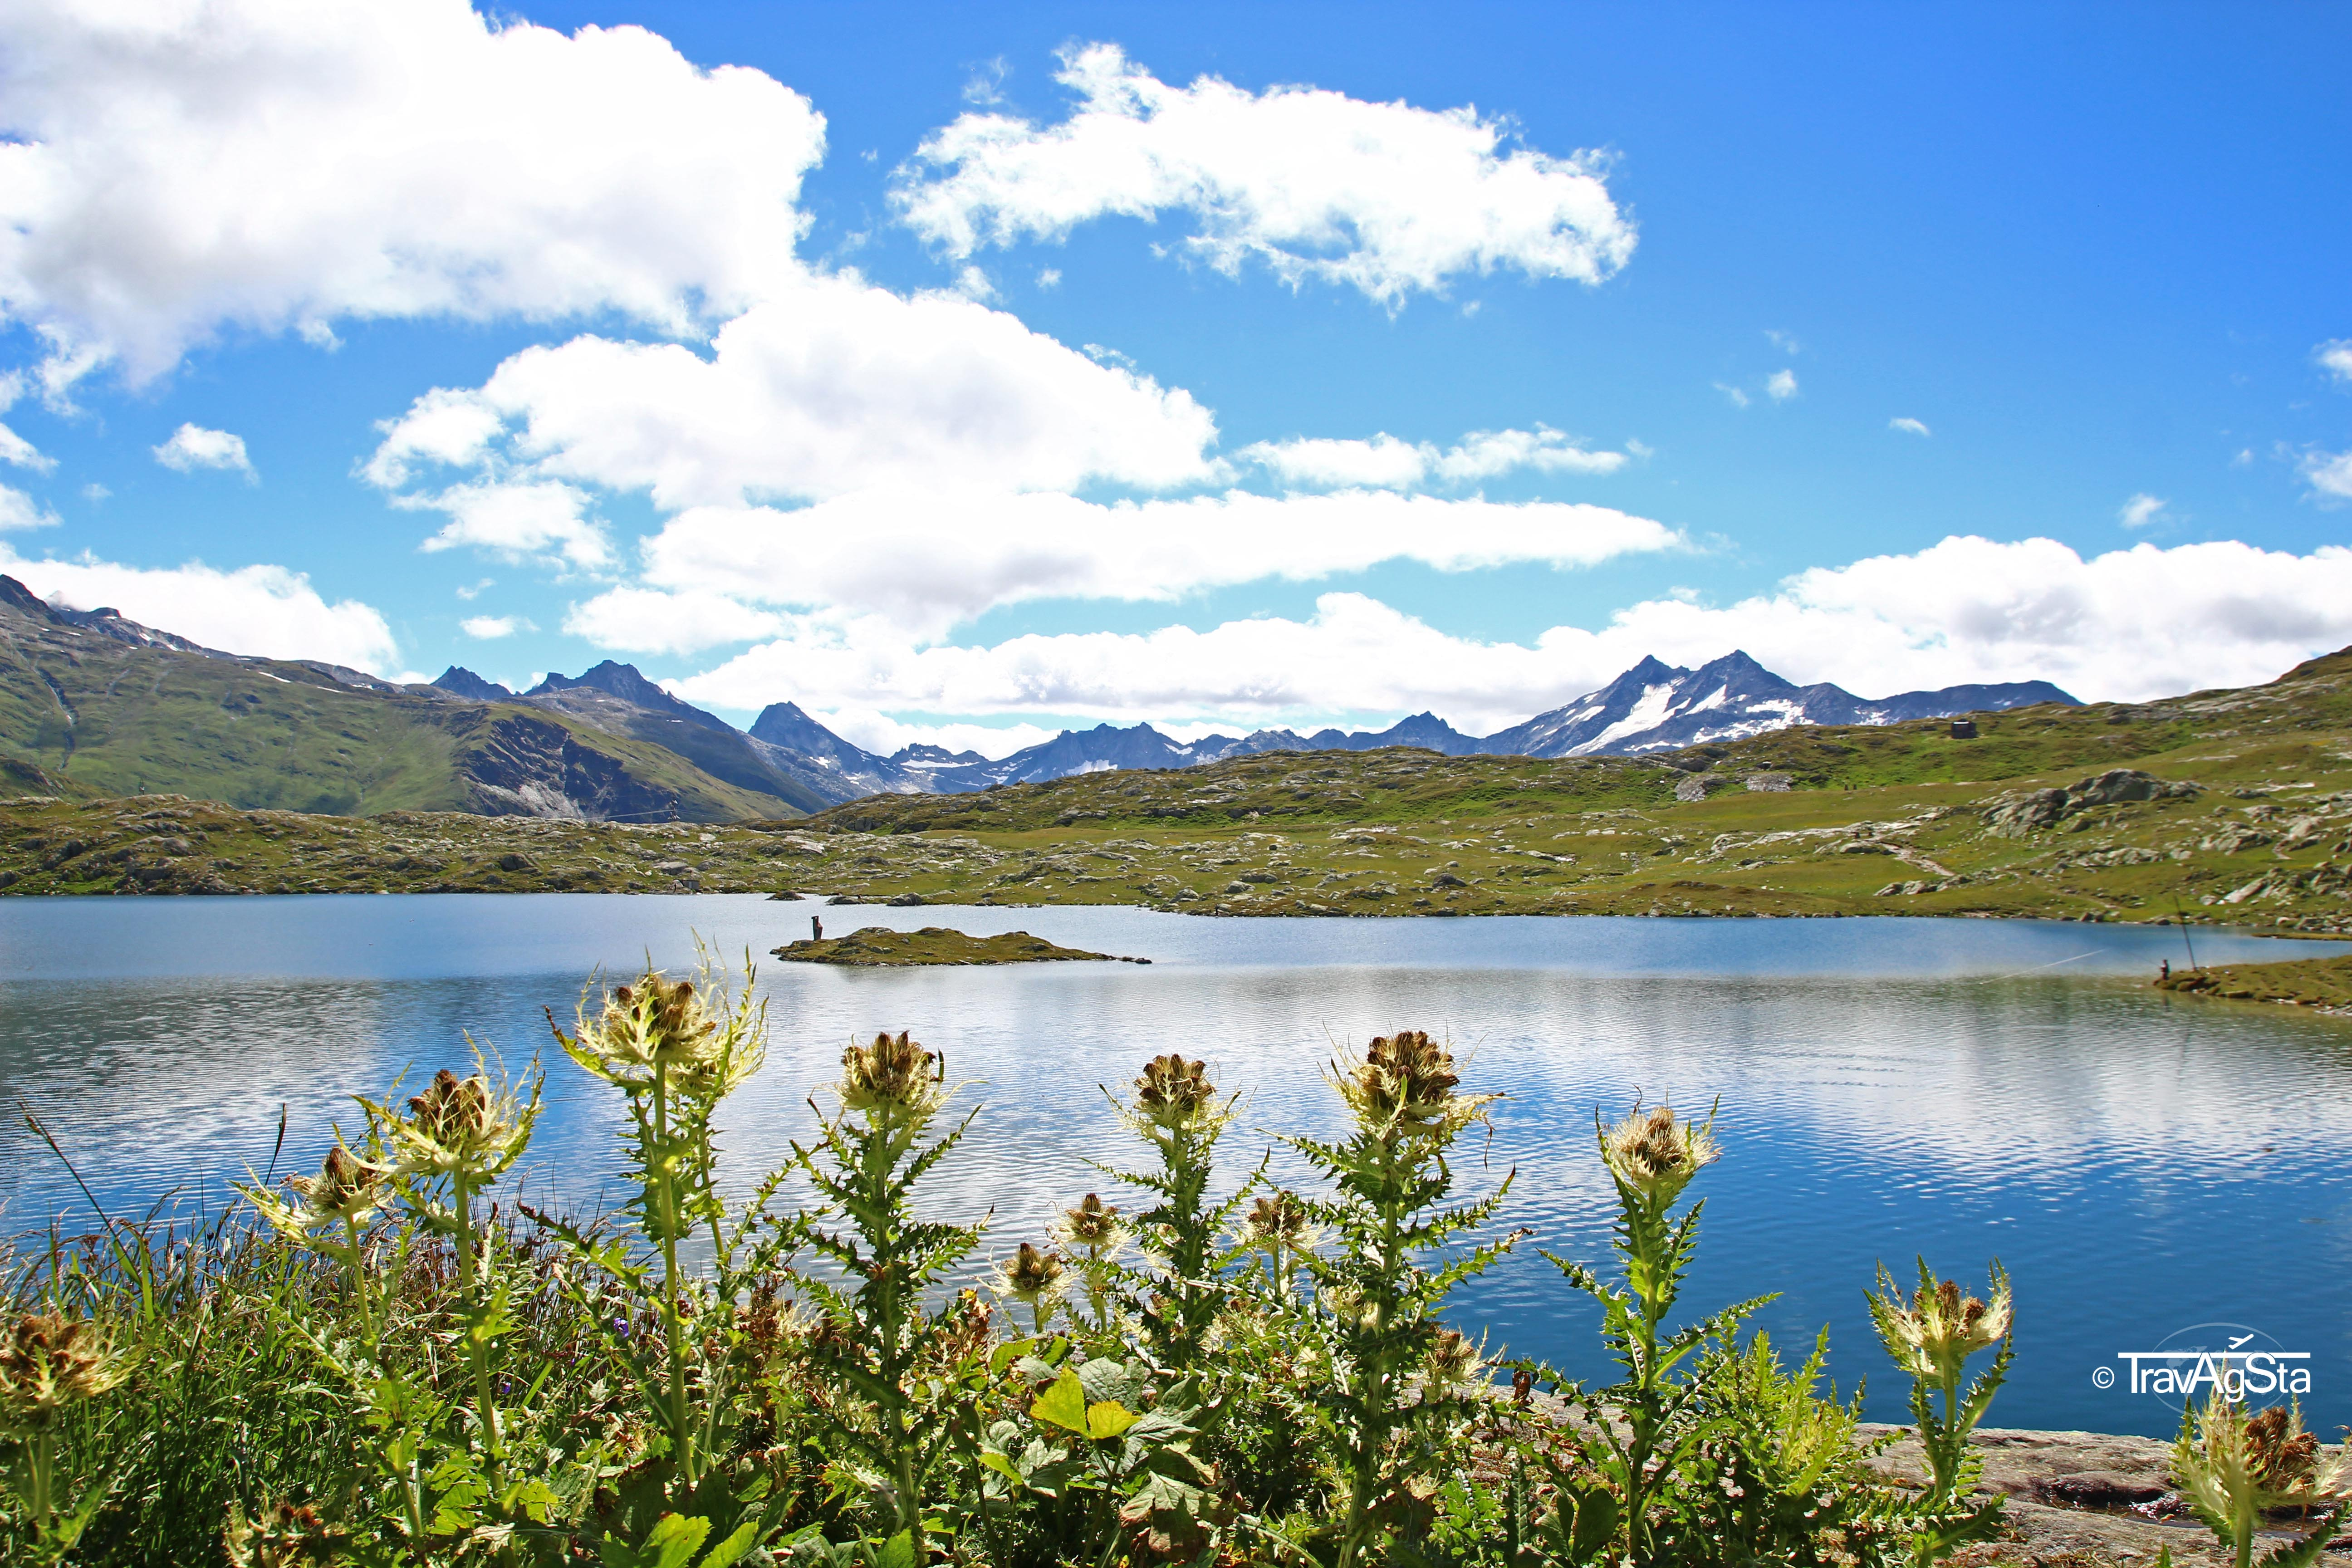 Lake next to viewpoint of Grimselsee, Switzerland